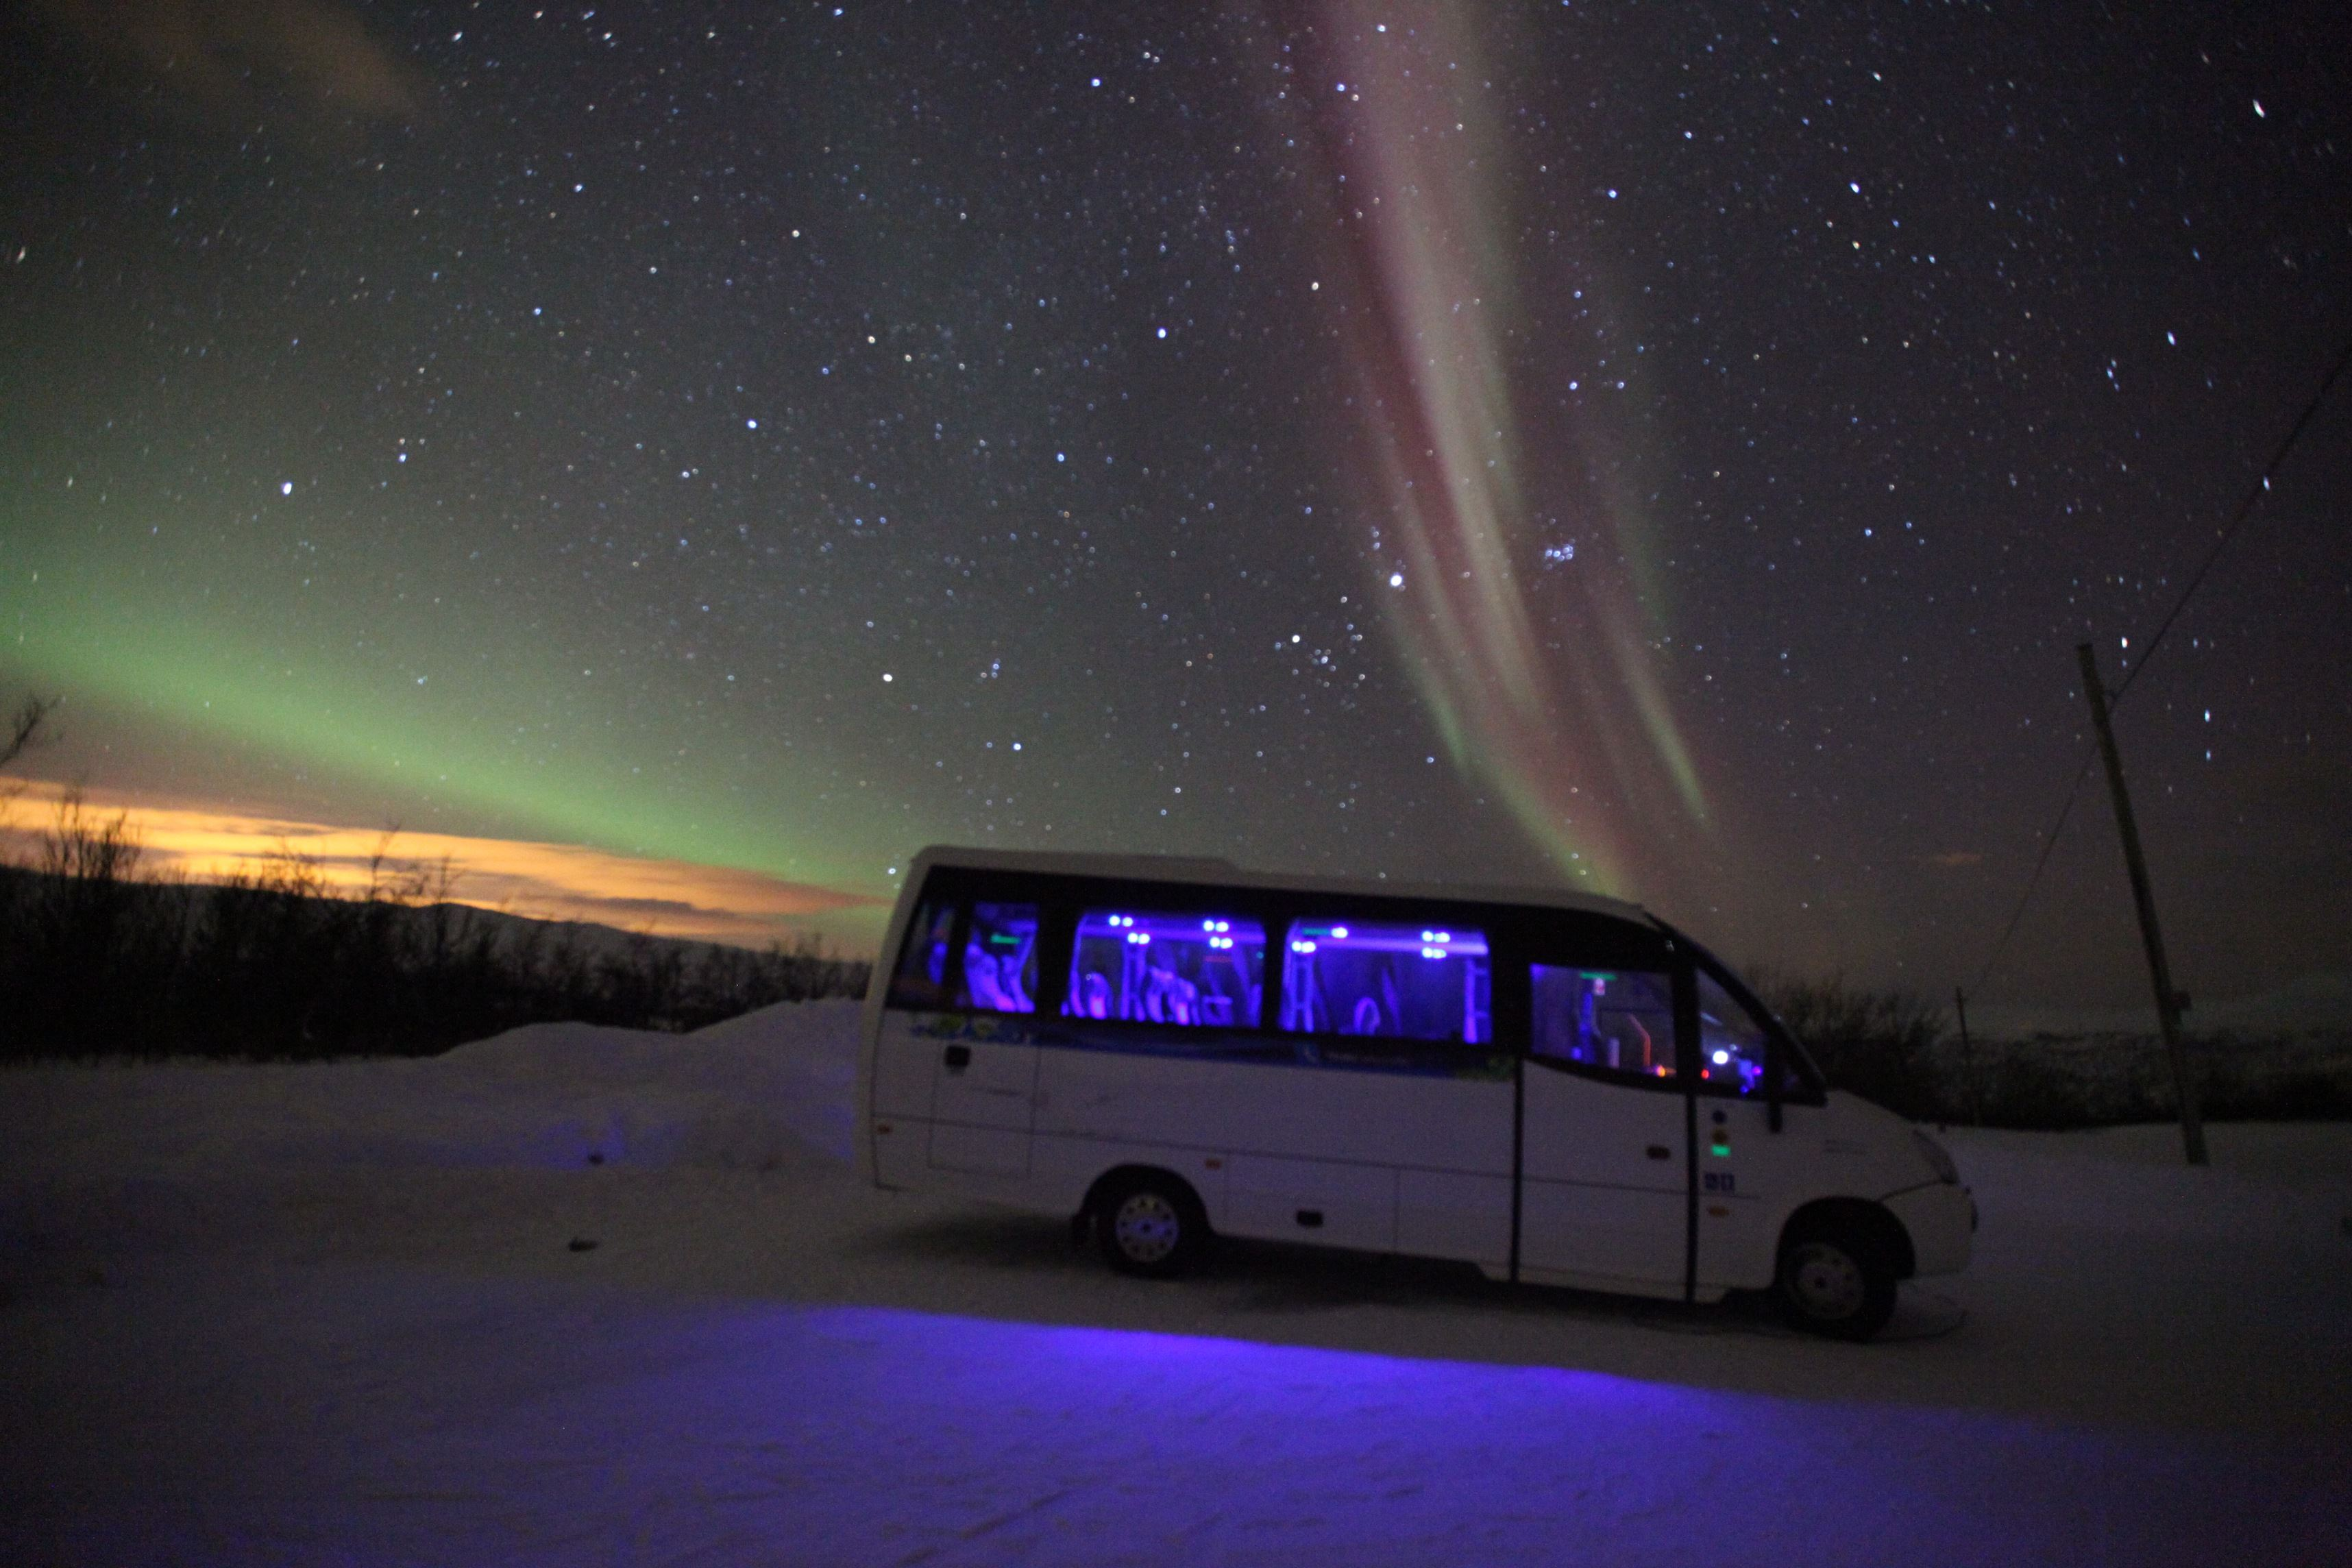 Amazing Aurora with a meal - Karlsøy Bus